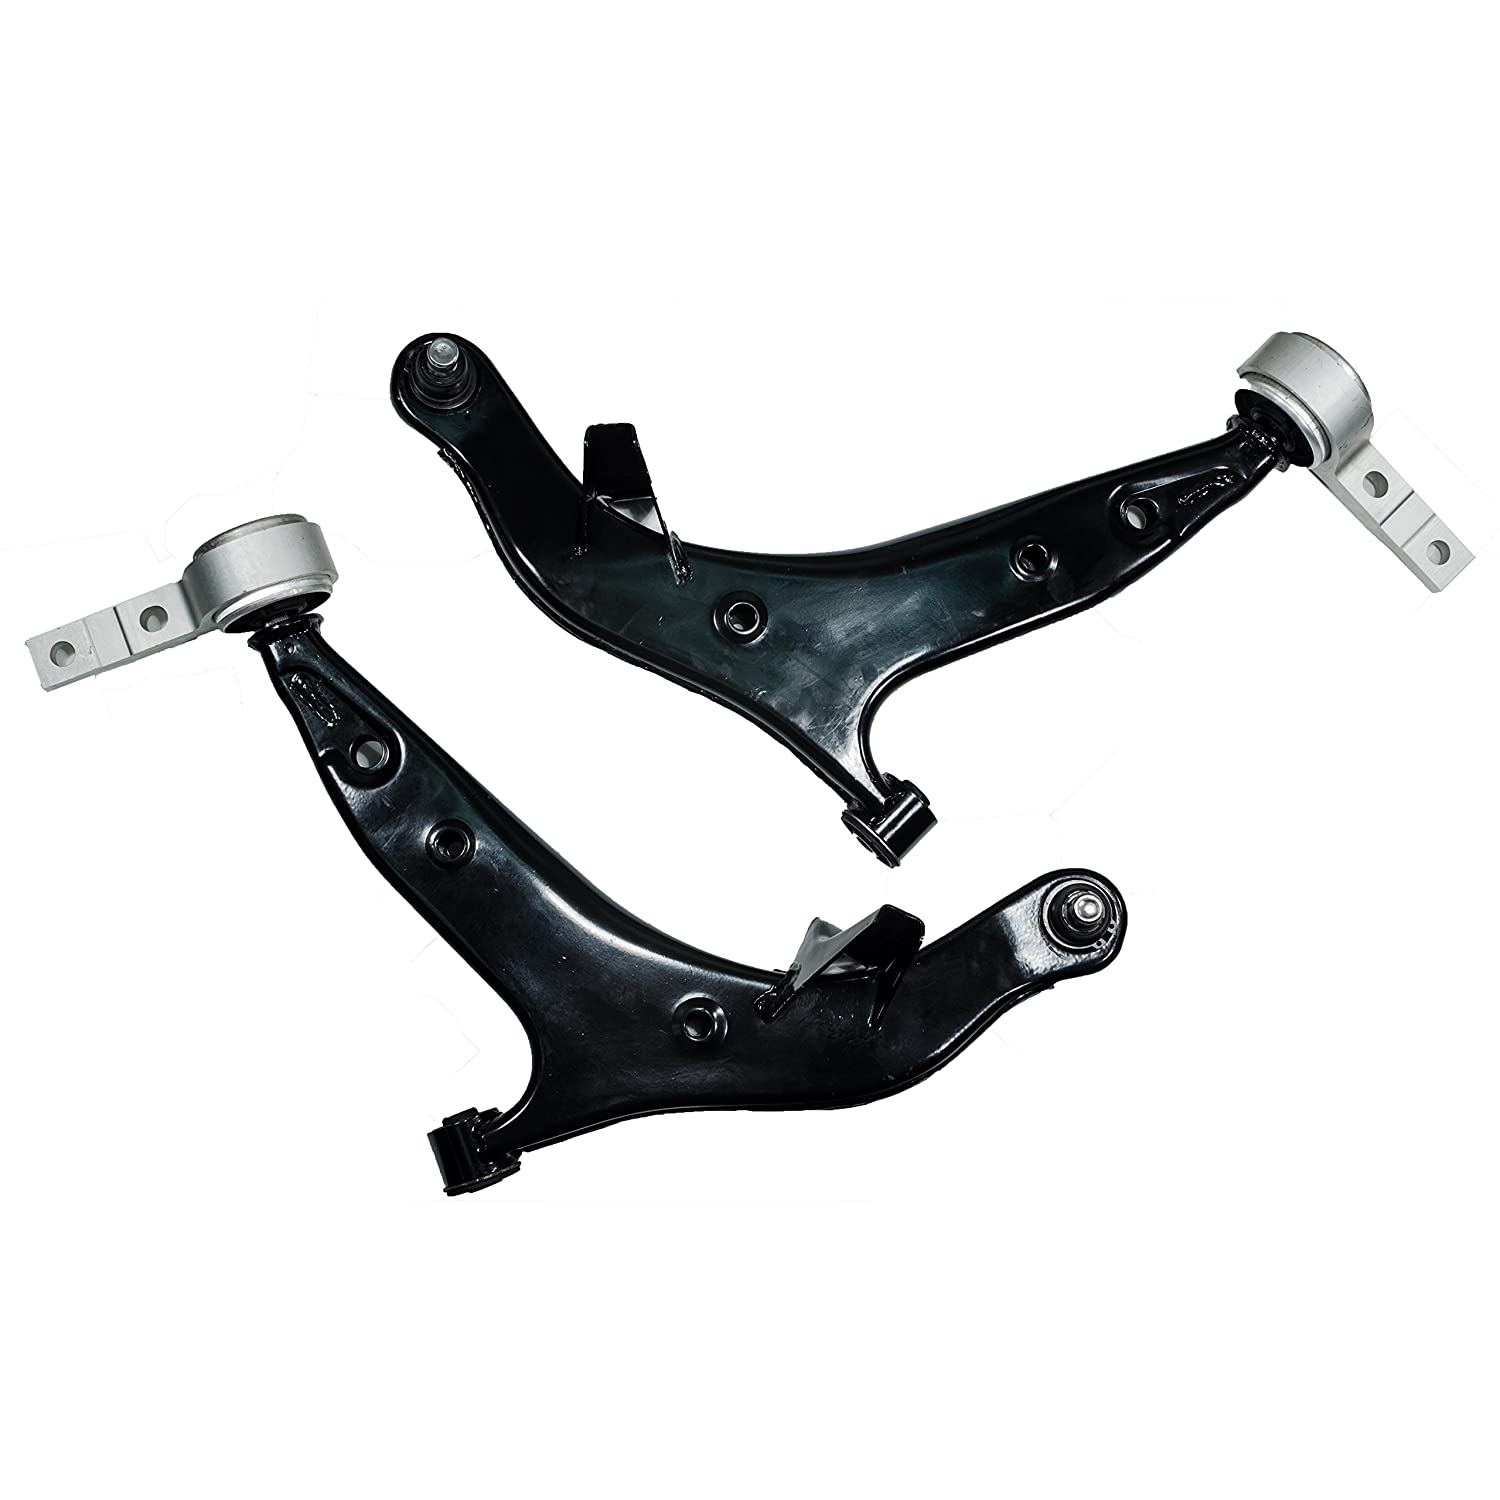 New Left /& Right Front Lower Control Arm Kit for Nissan Quest 2004 2005 2006 2007 2008 2009